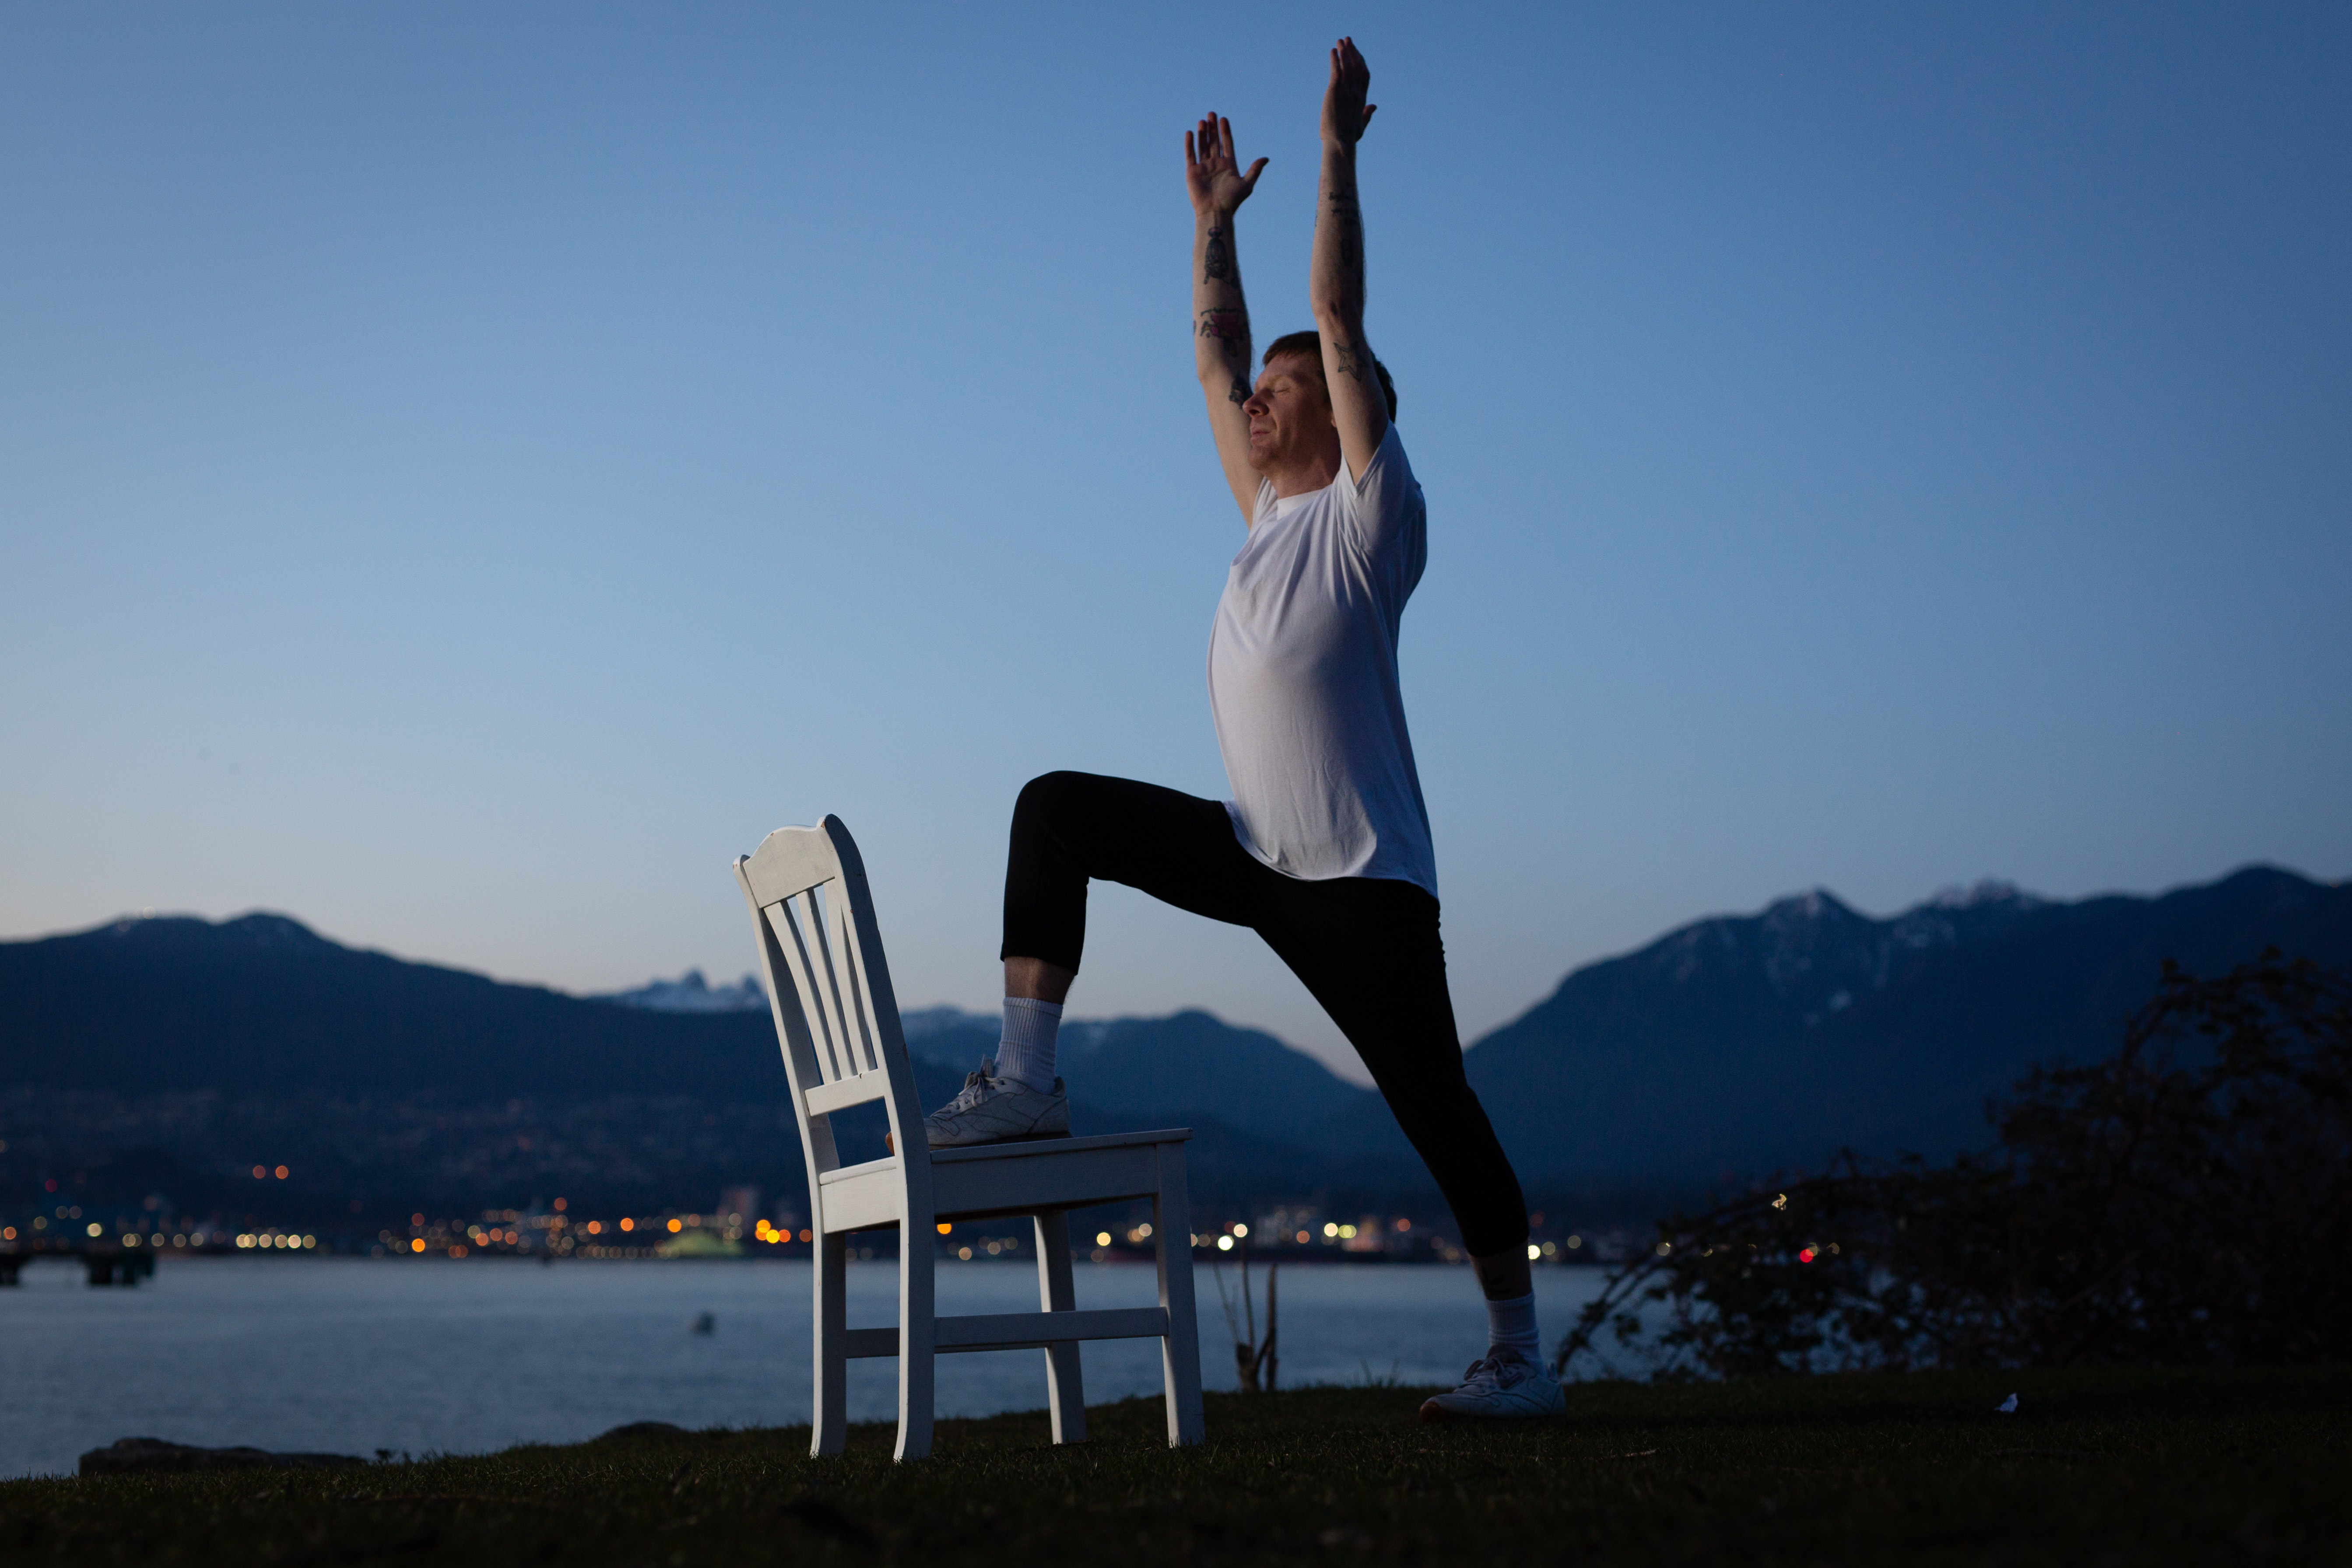 Tim Bang uses a chair to make yoga more accessible for students.